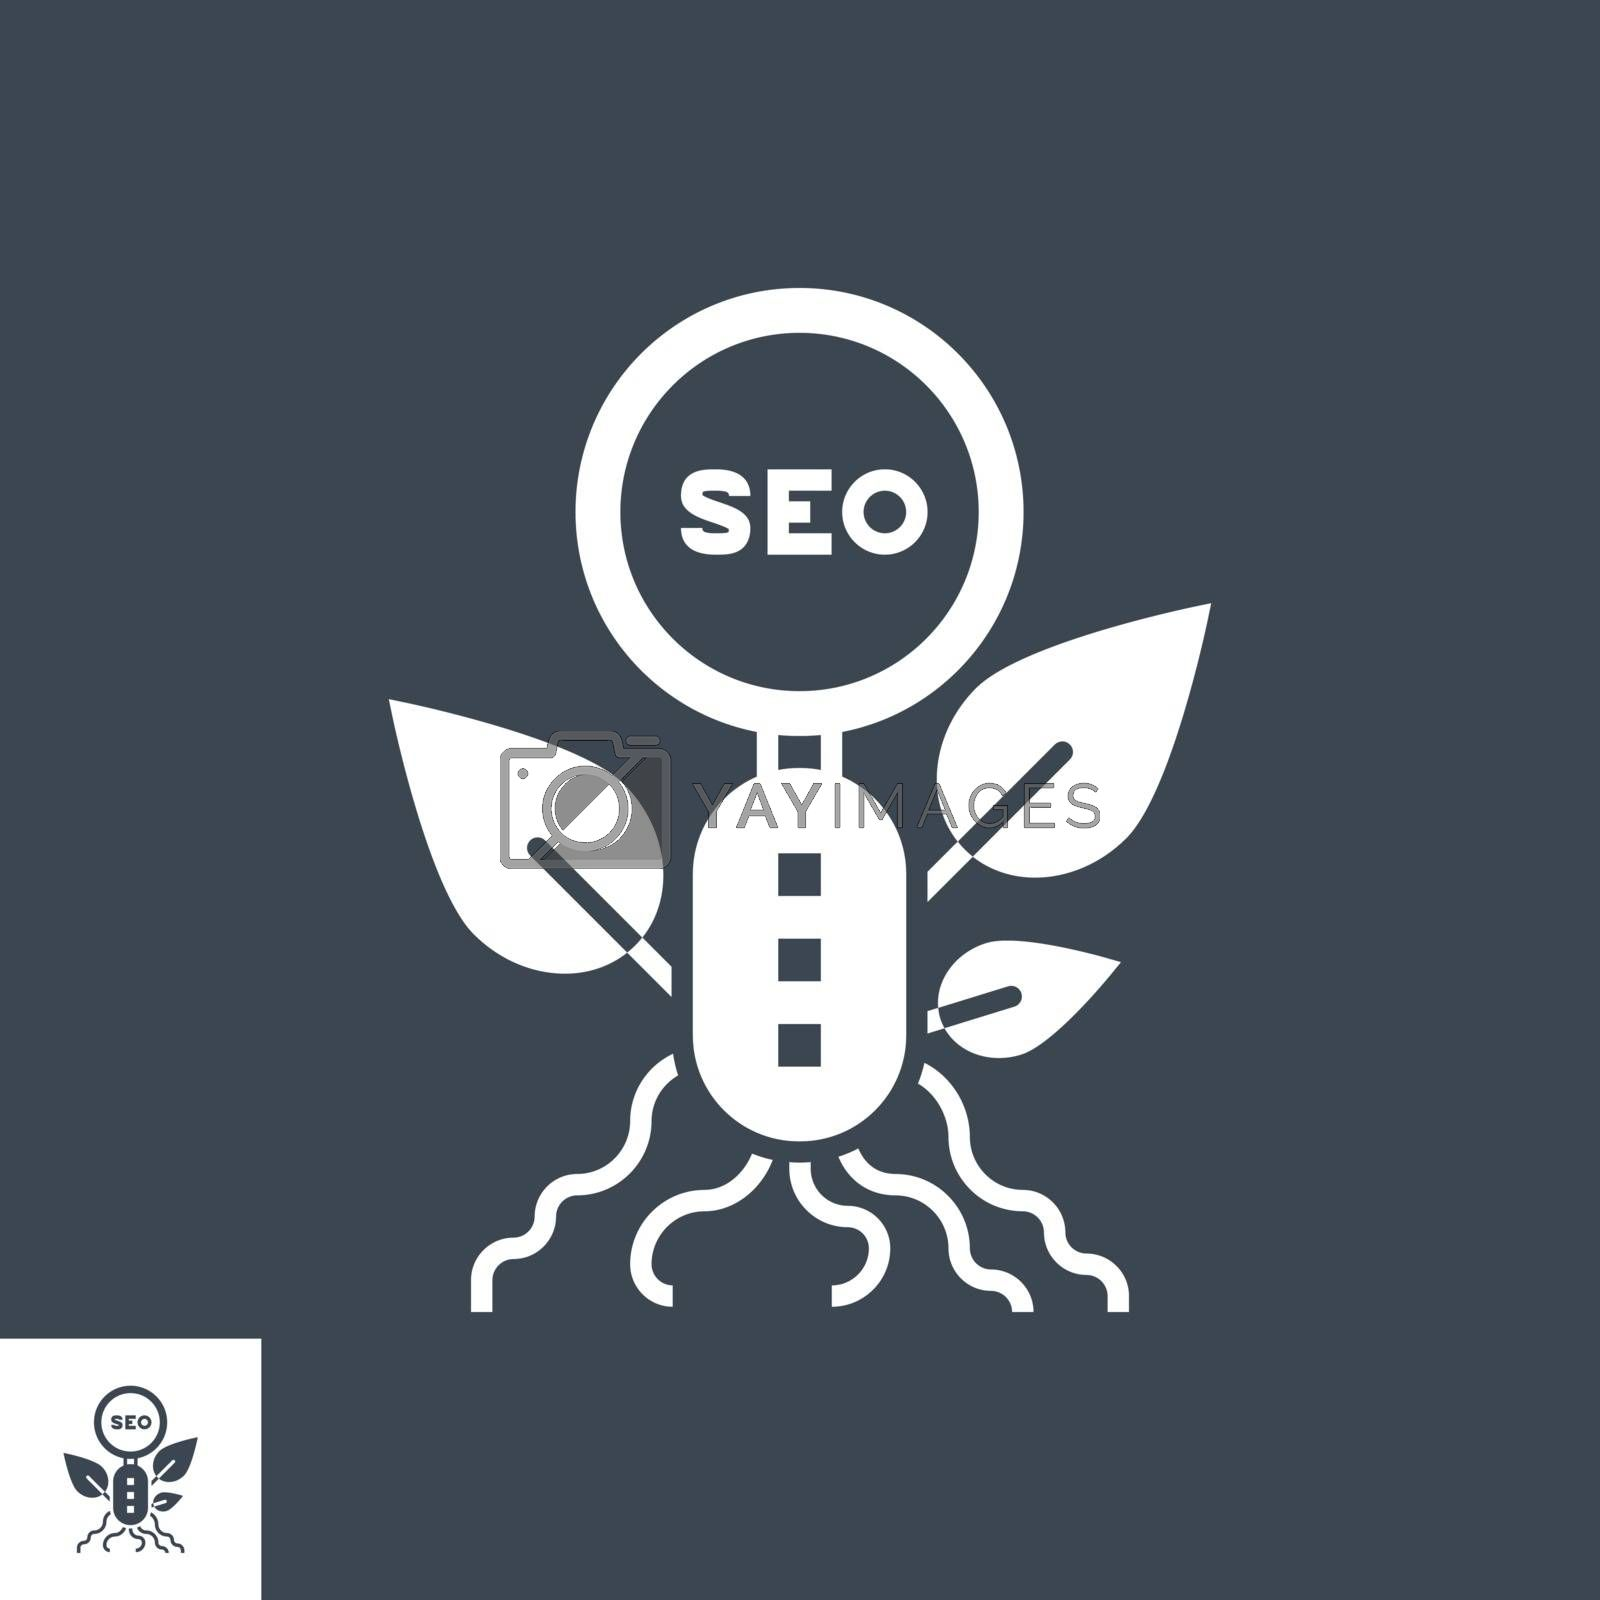 Organic SEO Related Vector Glyph Icon. Isolated on Black Background. Vector Illustration.